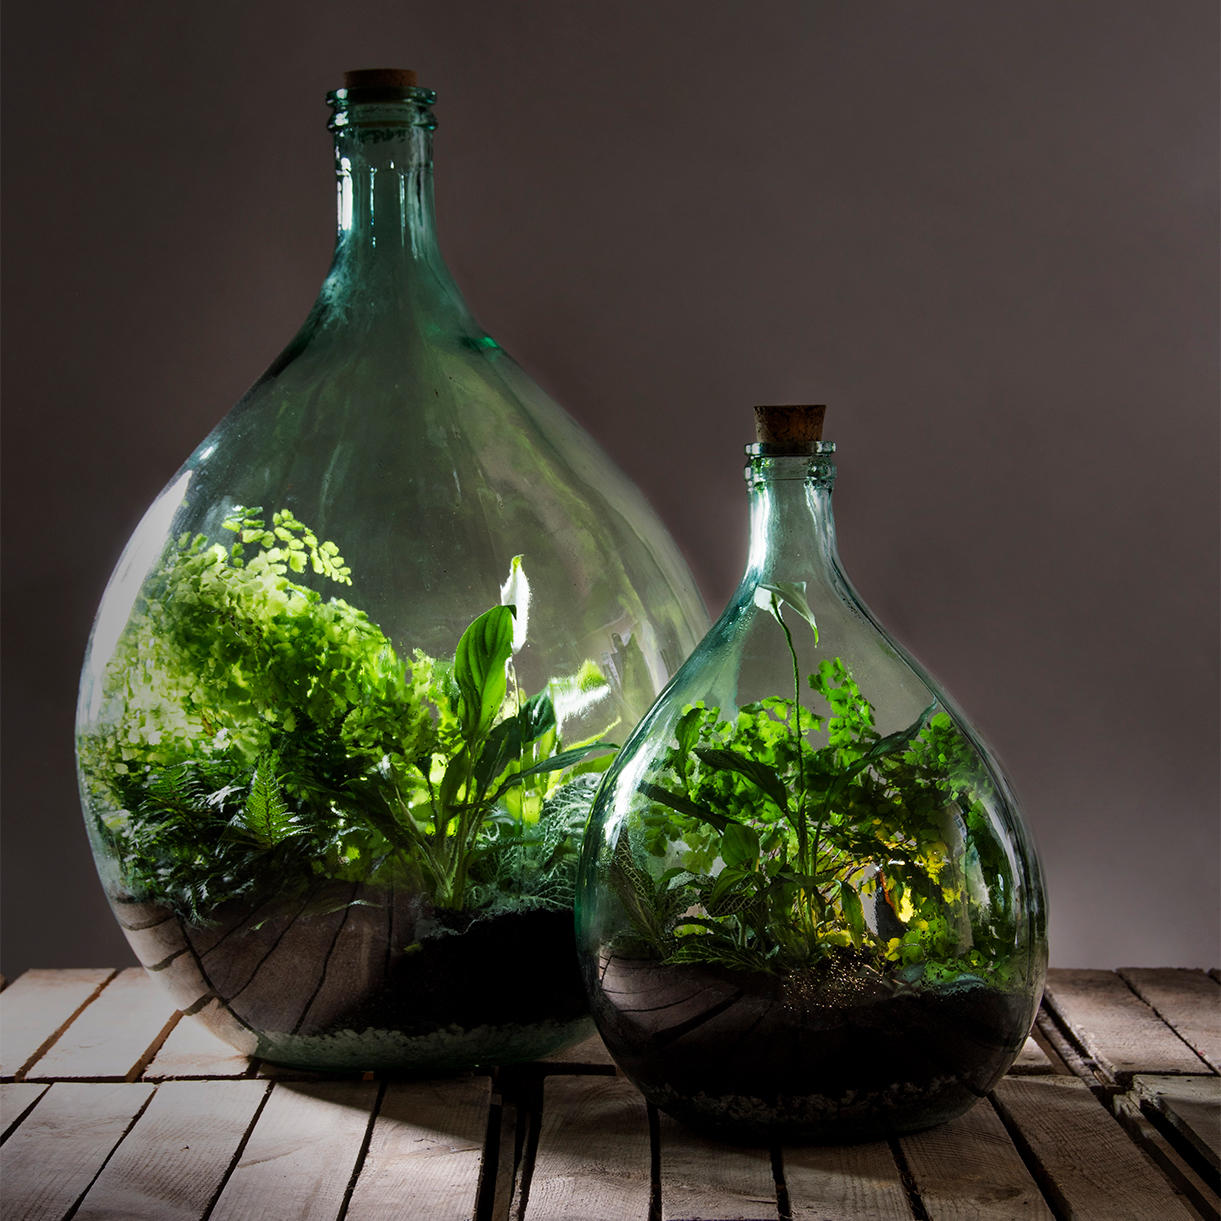 Buy Large Bottle Terrariums The Worm That Turned Revitalising Your Outdoor Space